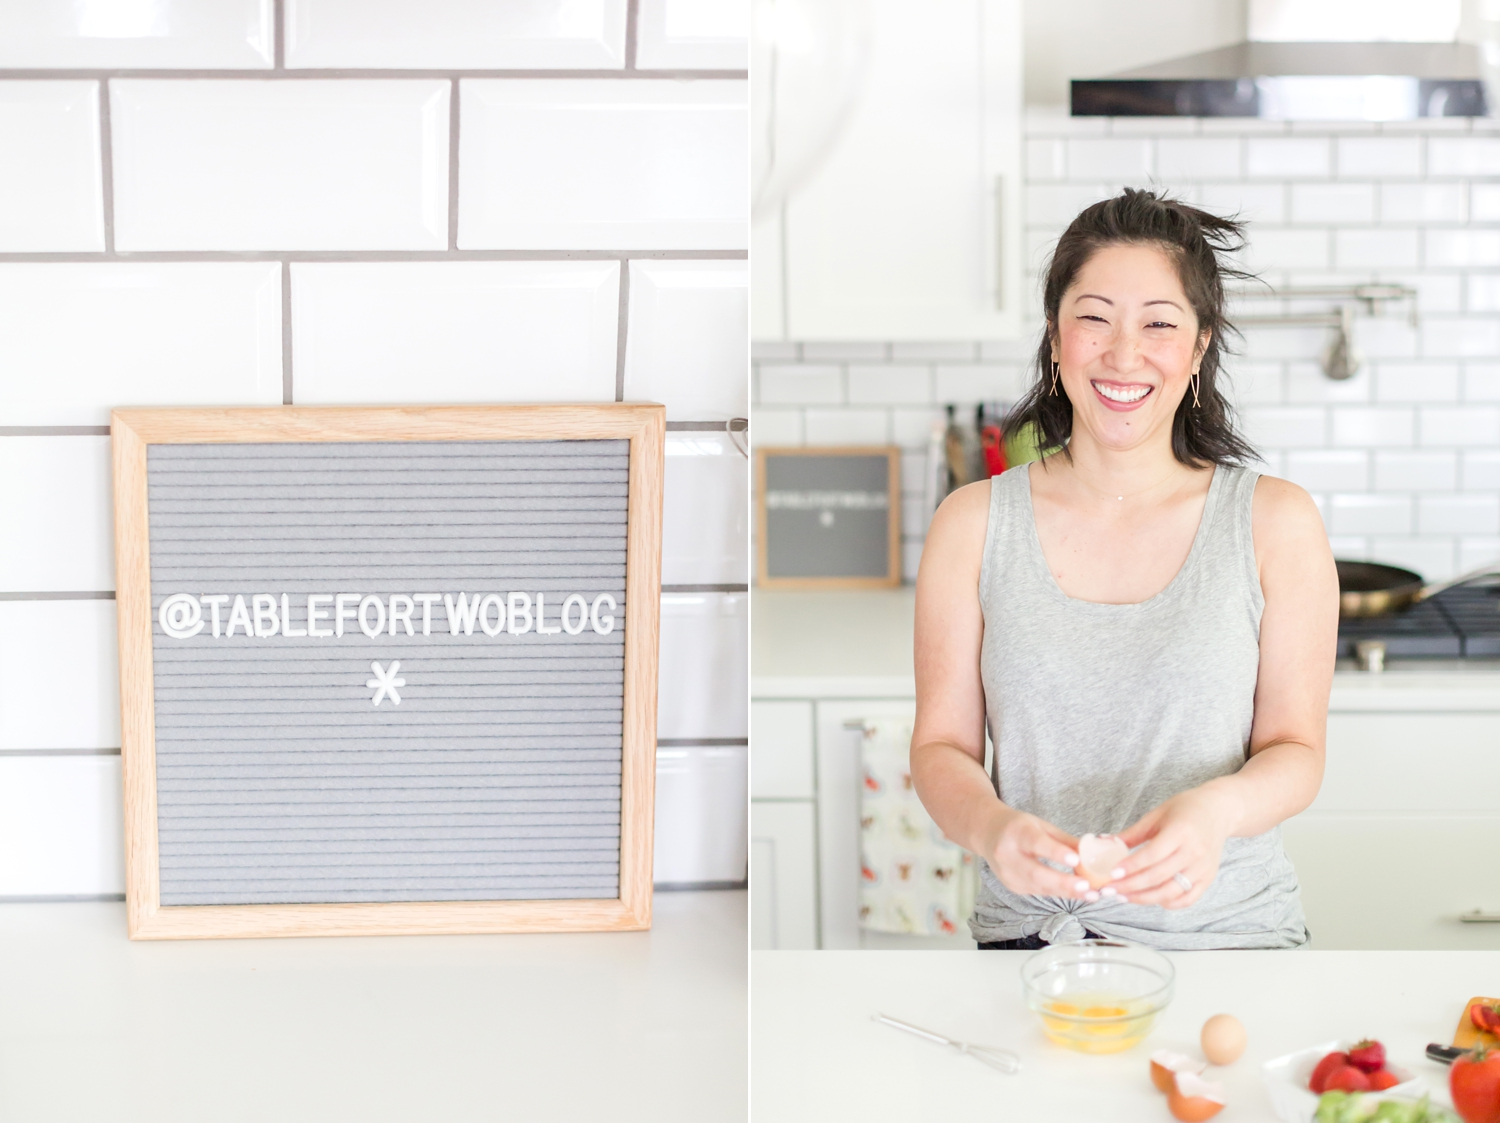 Love these in-home photos of Julie in her beautiful kitchen!